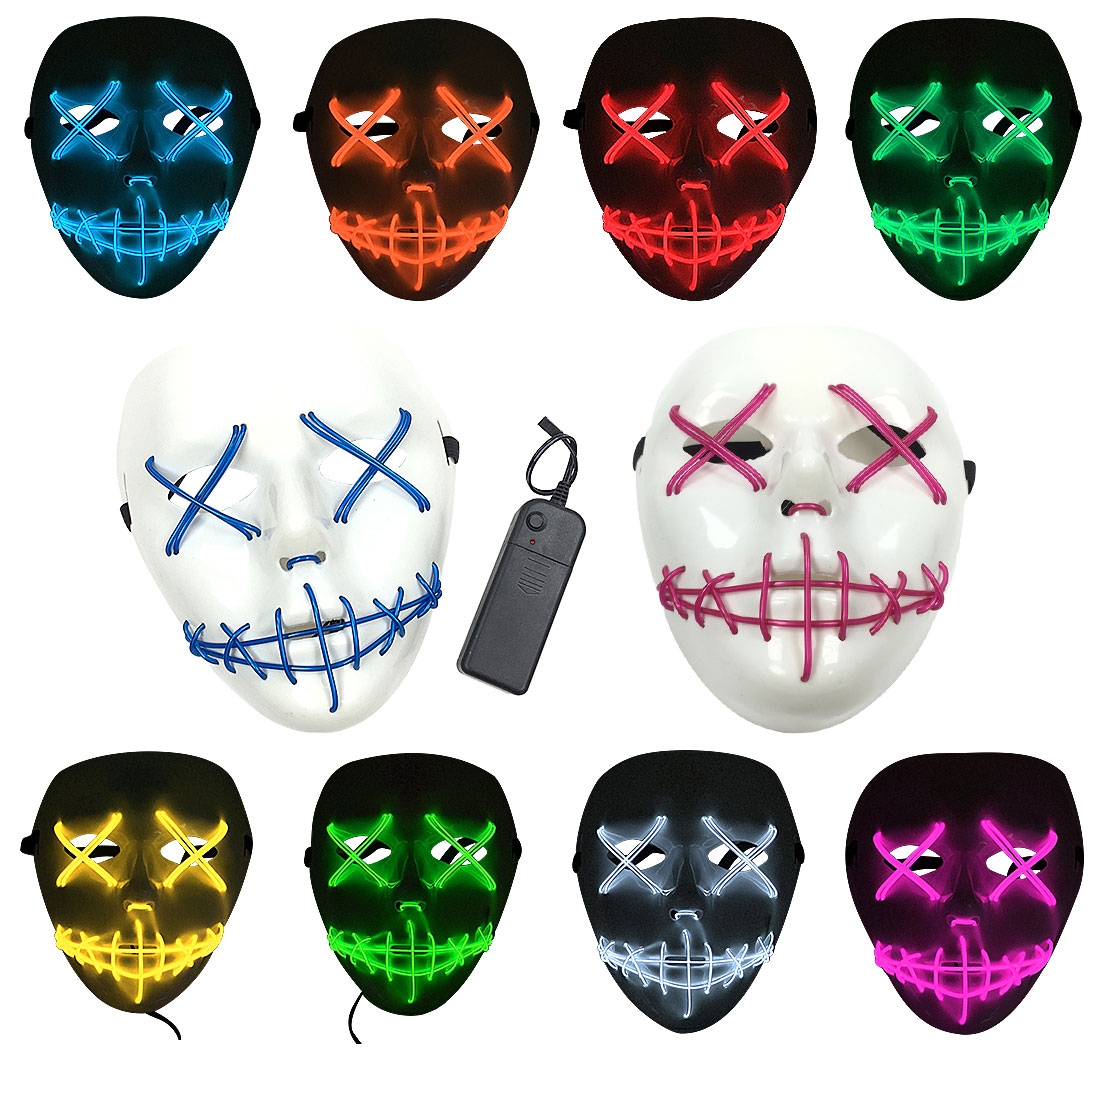 cut rate led halloween mask light up funny masks the purge election